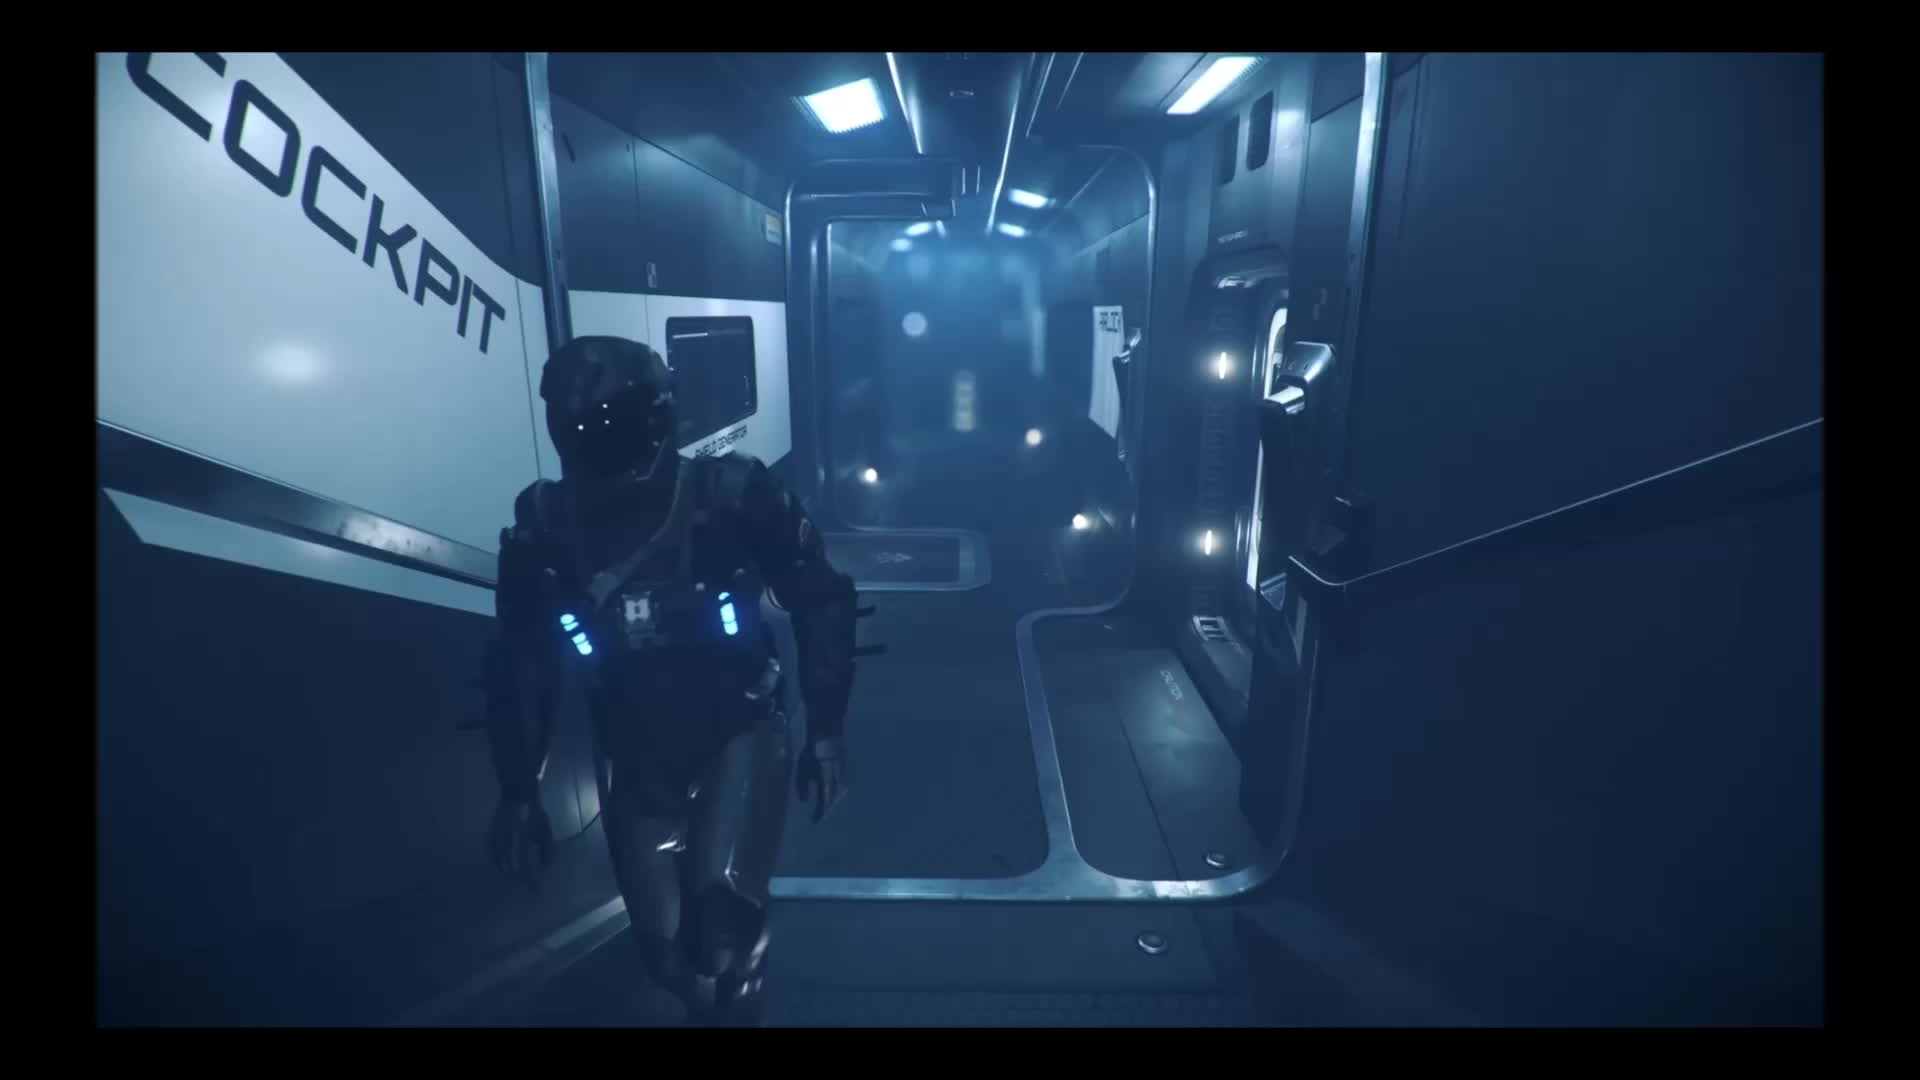 starcitizen, They are trying to get in. Everyone take position! GIFs